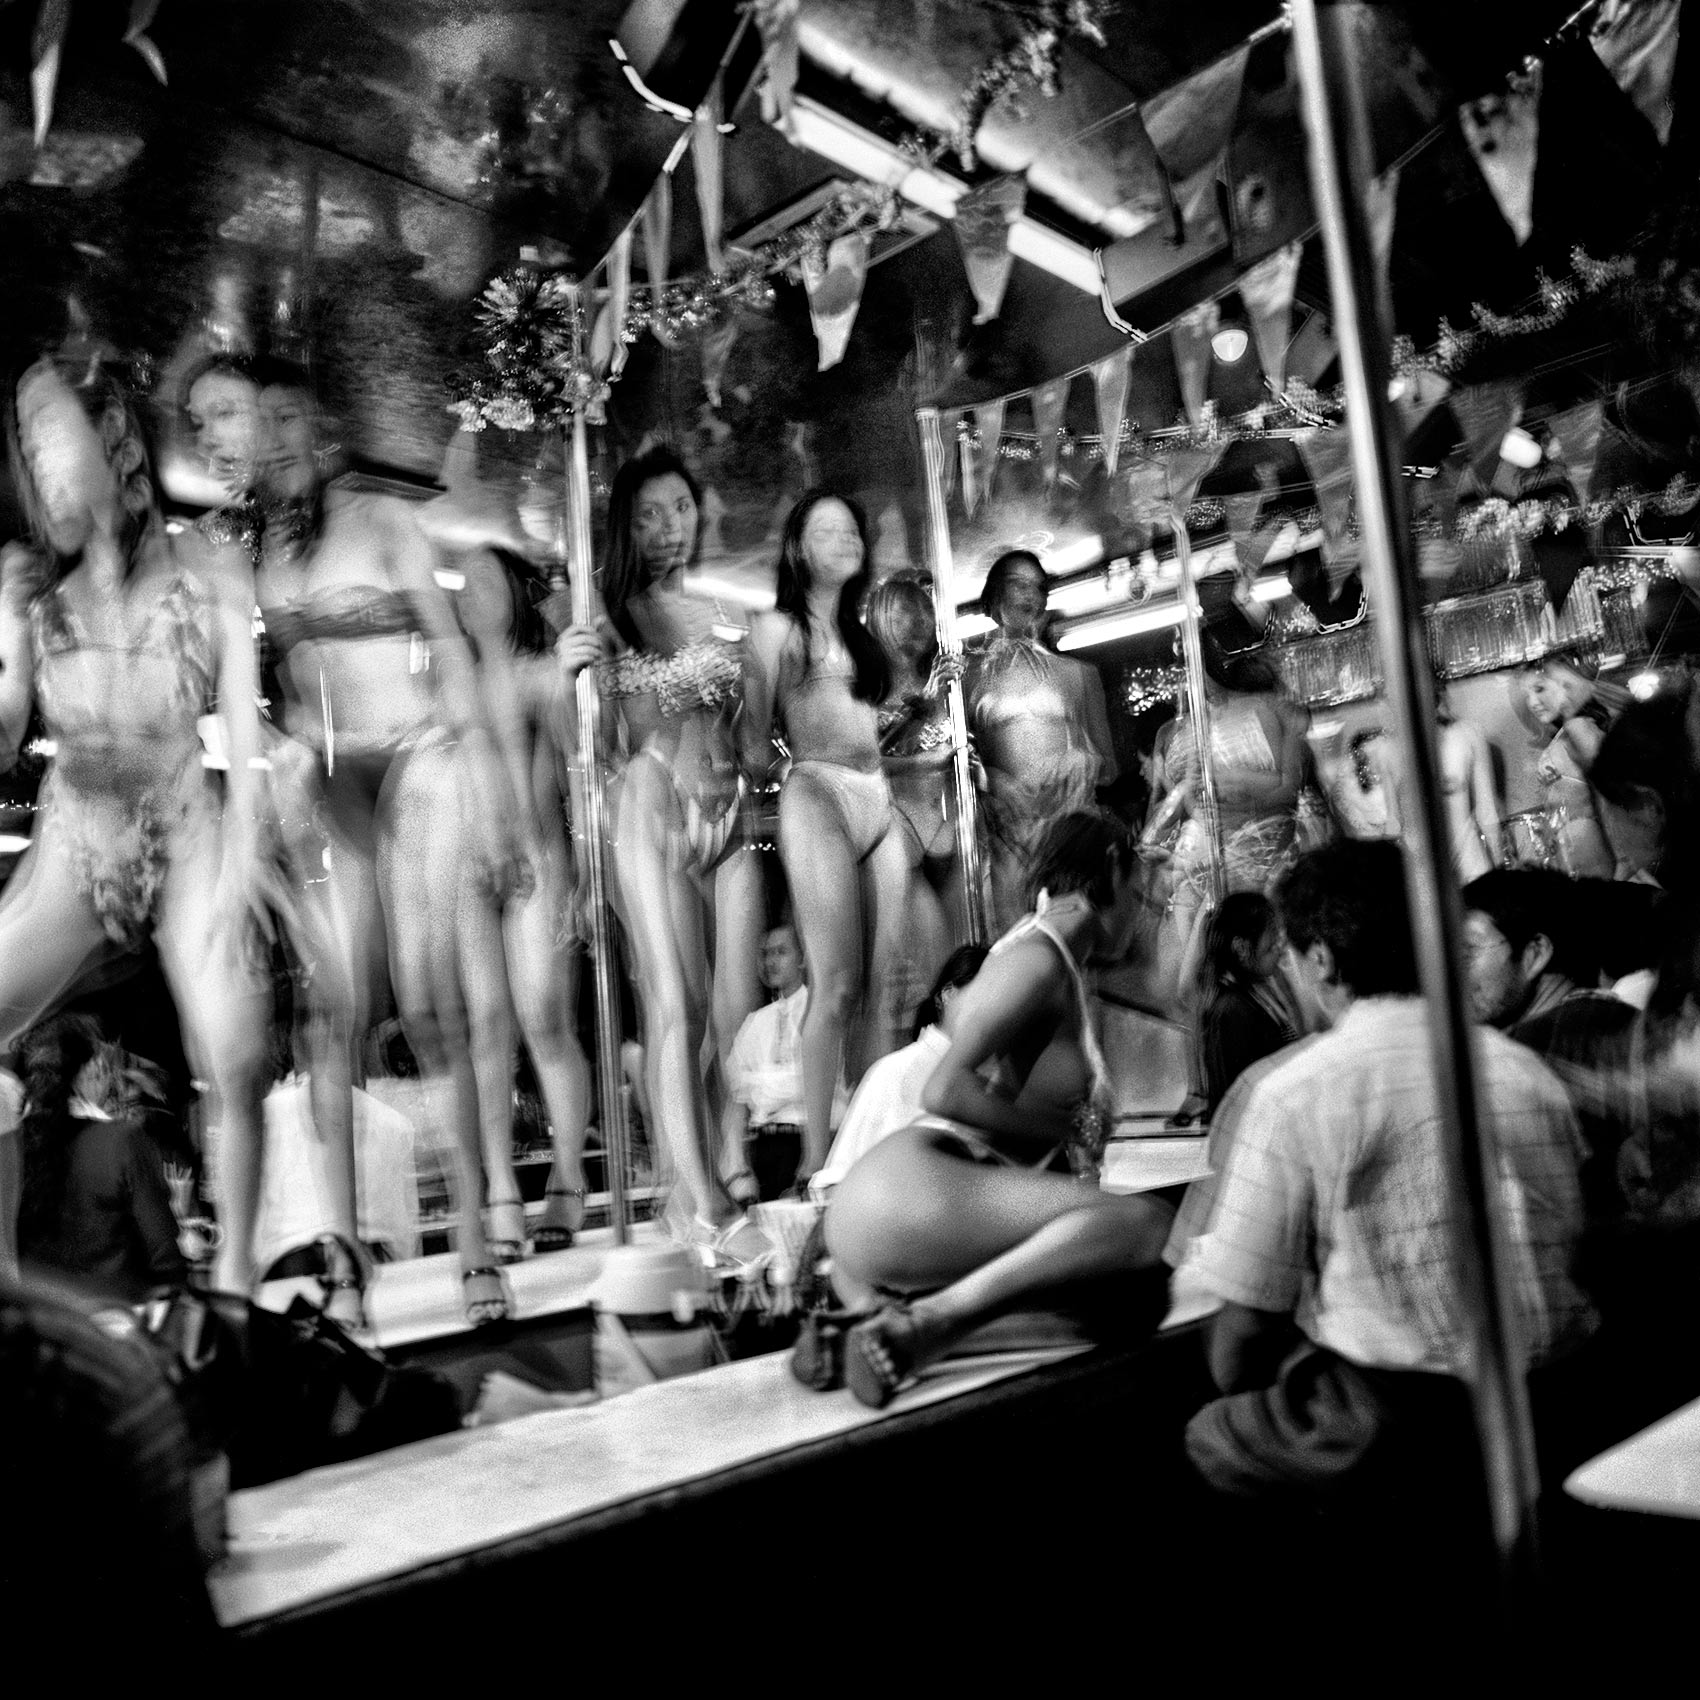 strippers-congregate-on-stage-in-bangkoks-notorious-pat-pong-red-light-district